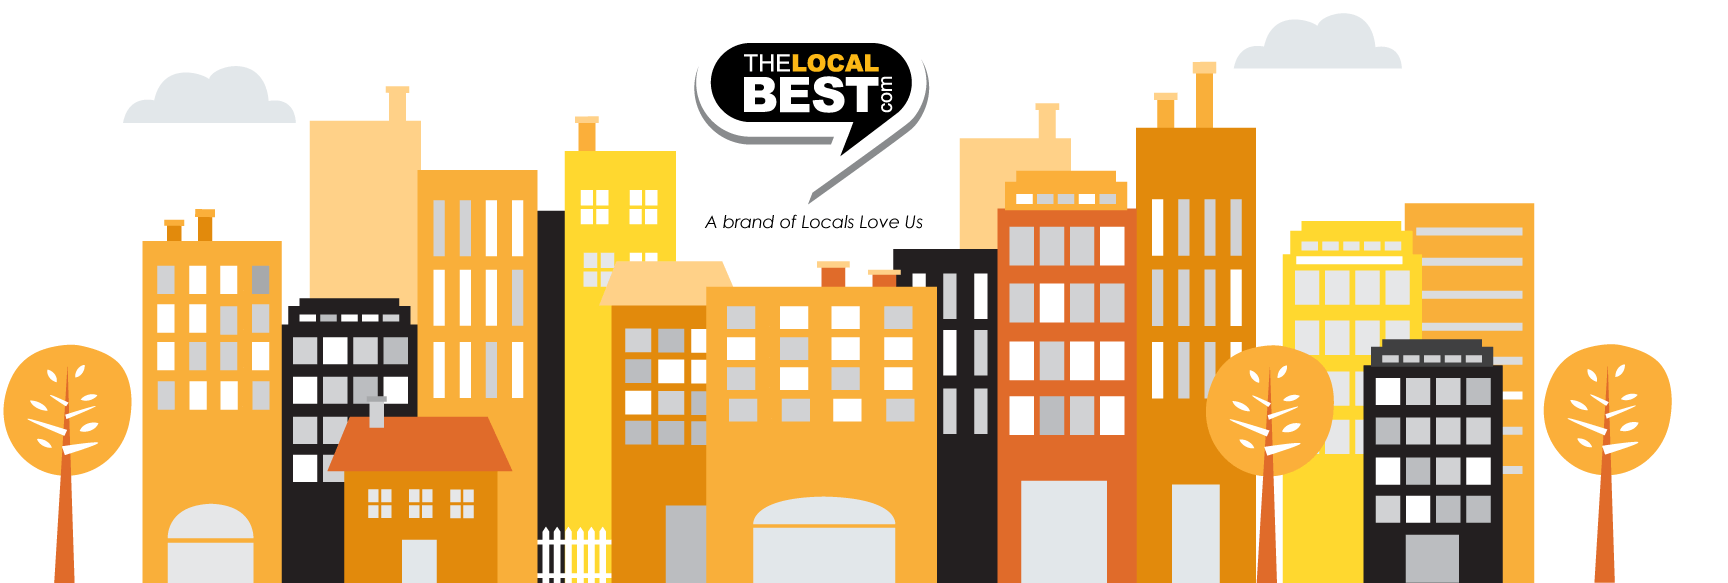 Sioux Falls Guide ♥ The Local Best